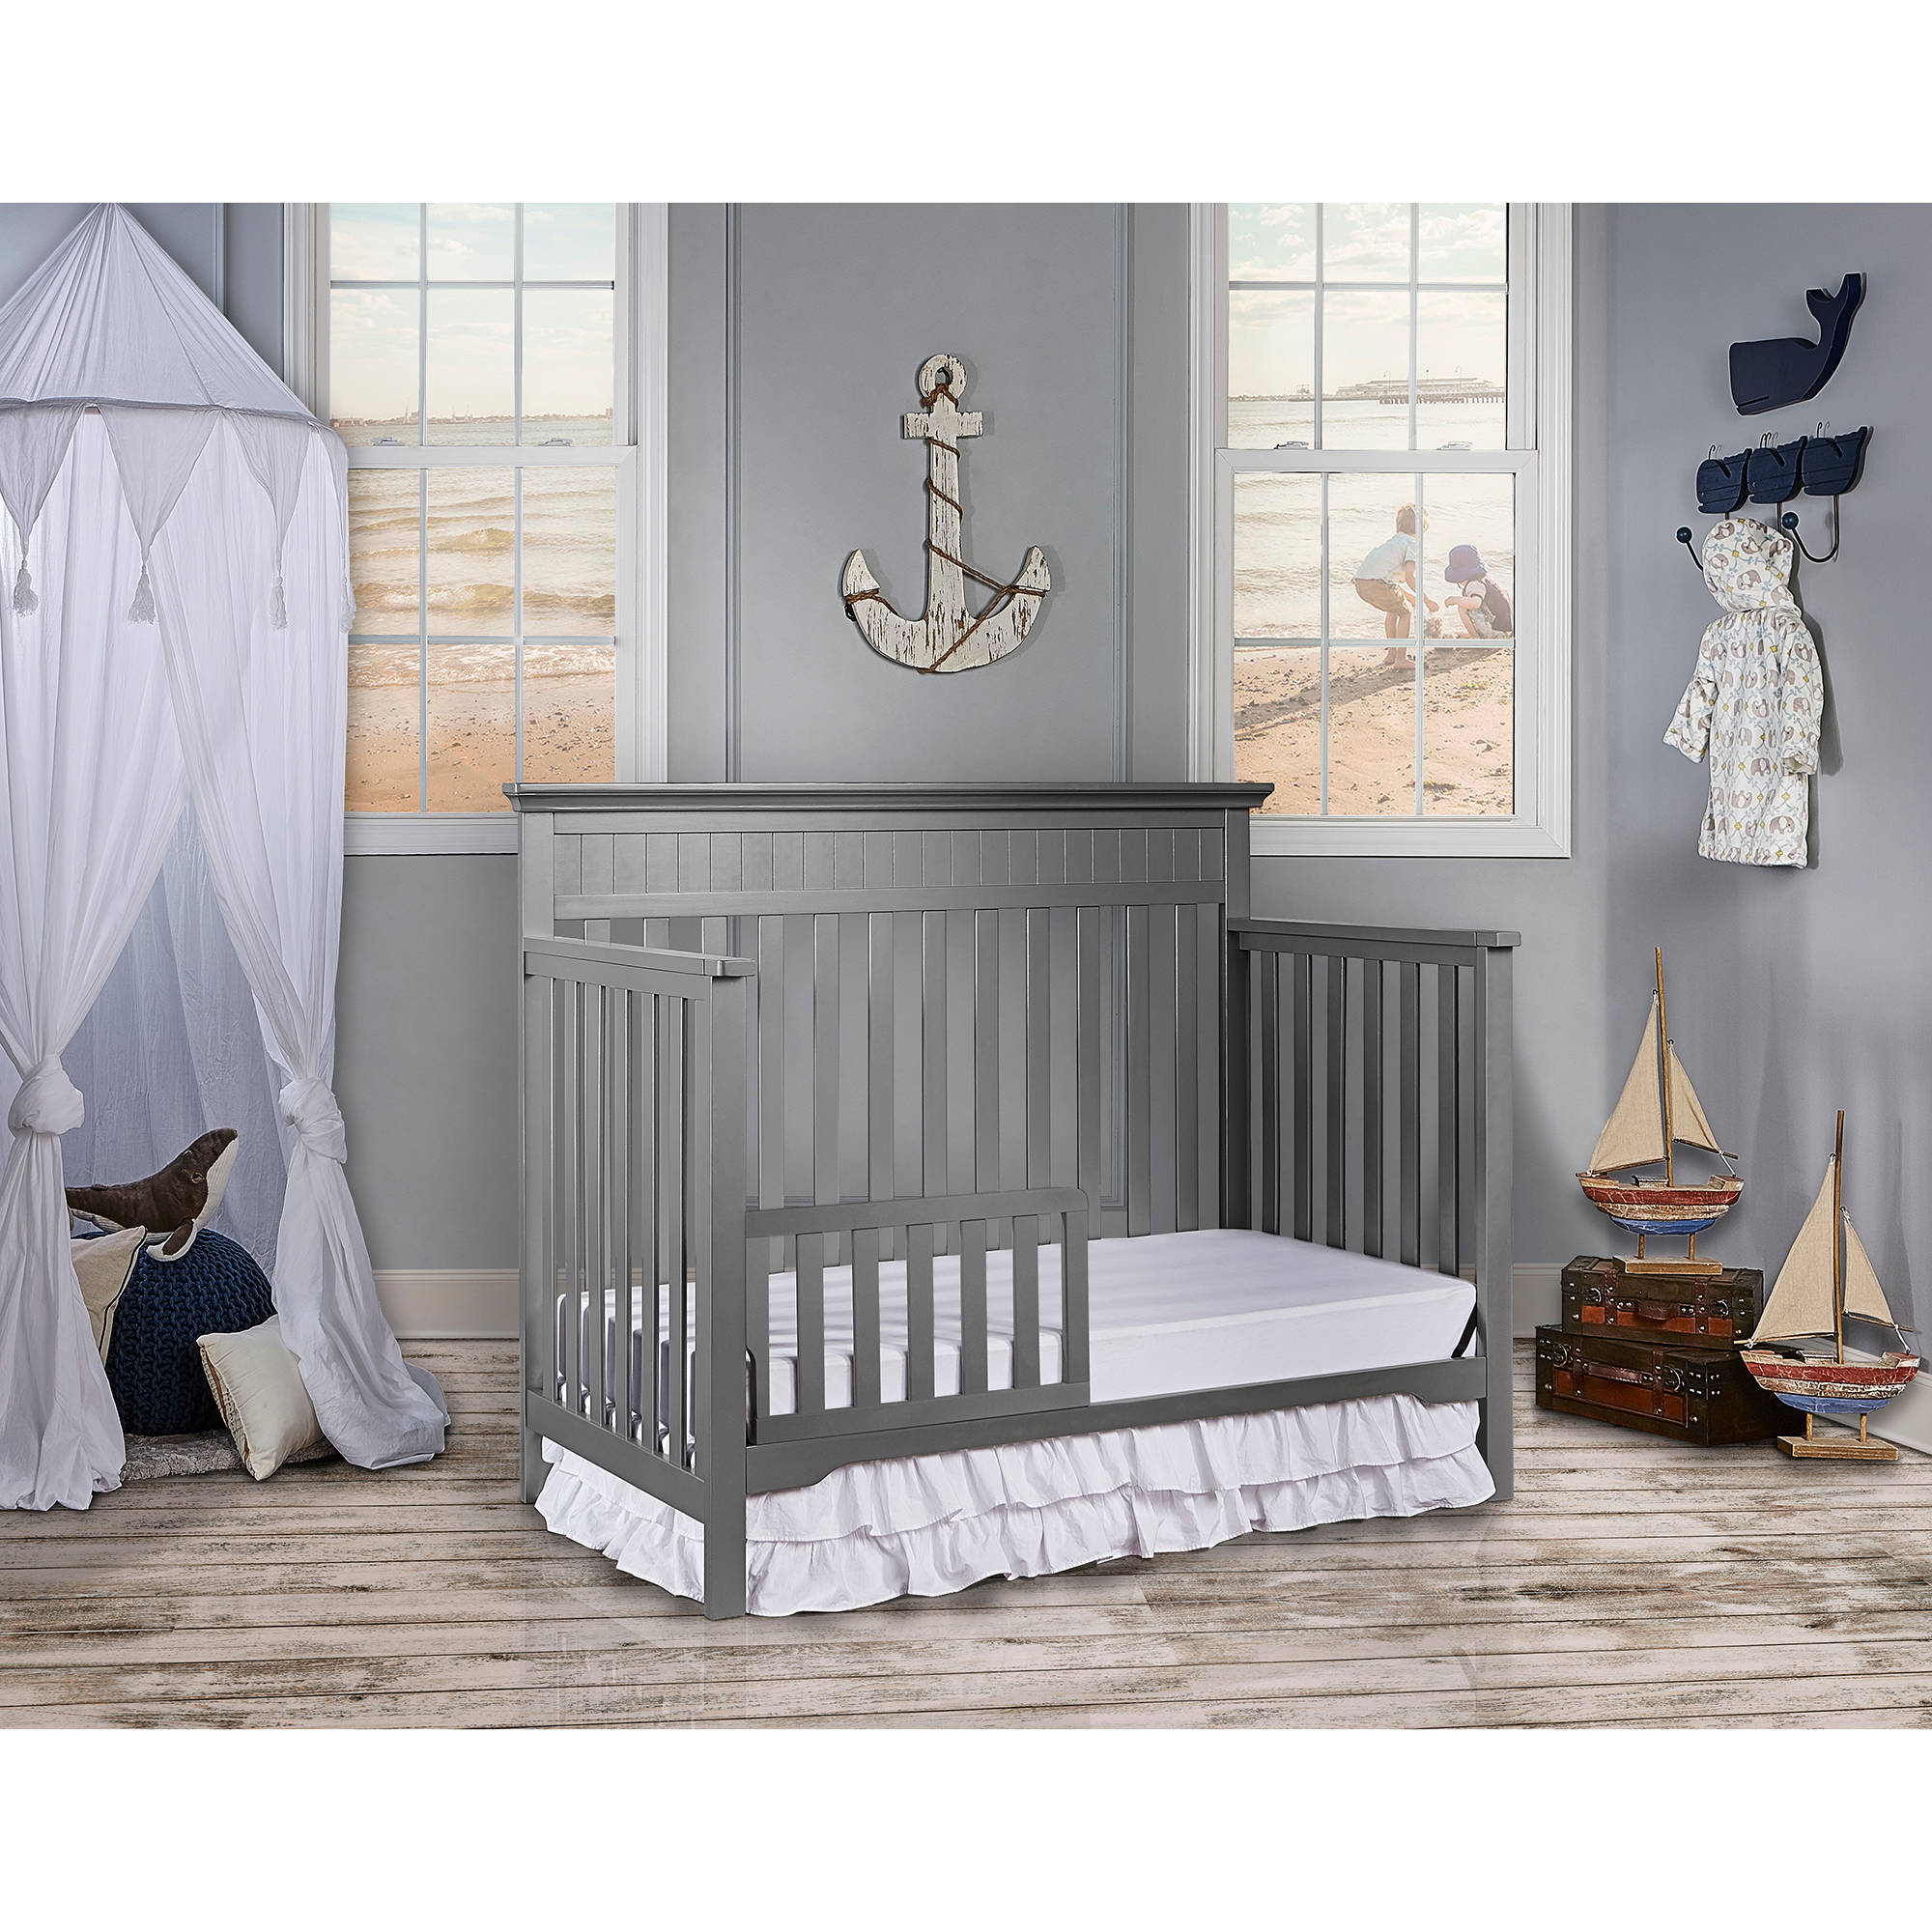 5 Cool Cribs That Convert To Full Beds: 5-In-1 Convertible Crib Baby Toddler Fixed Side Rails